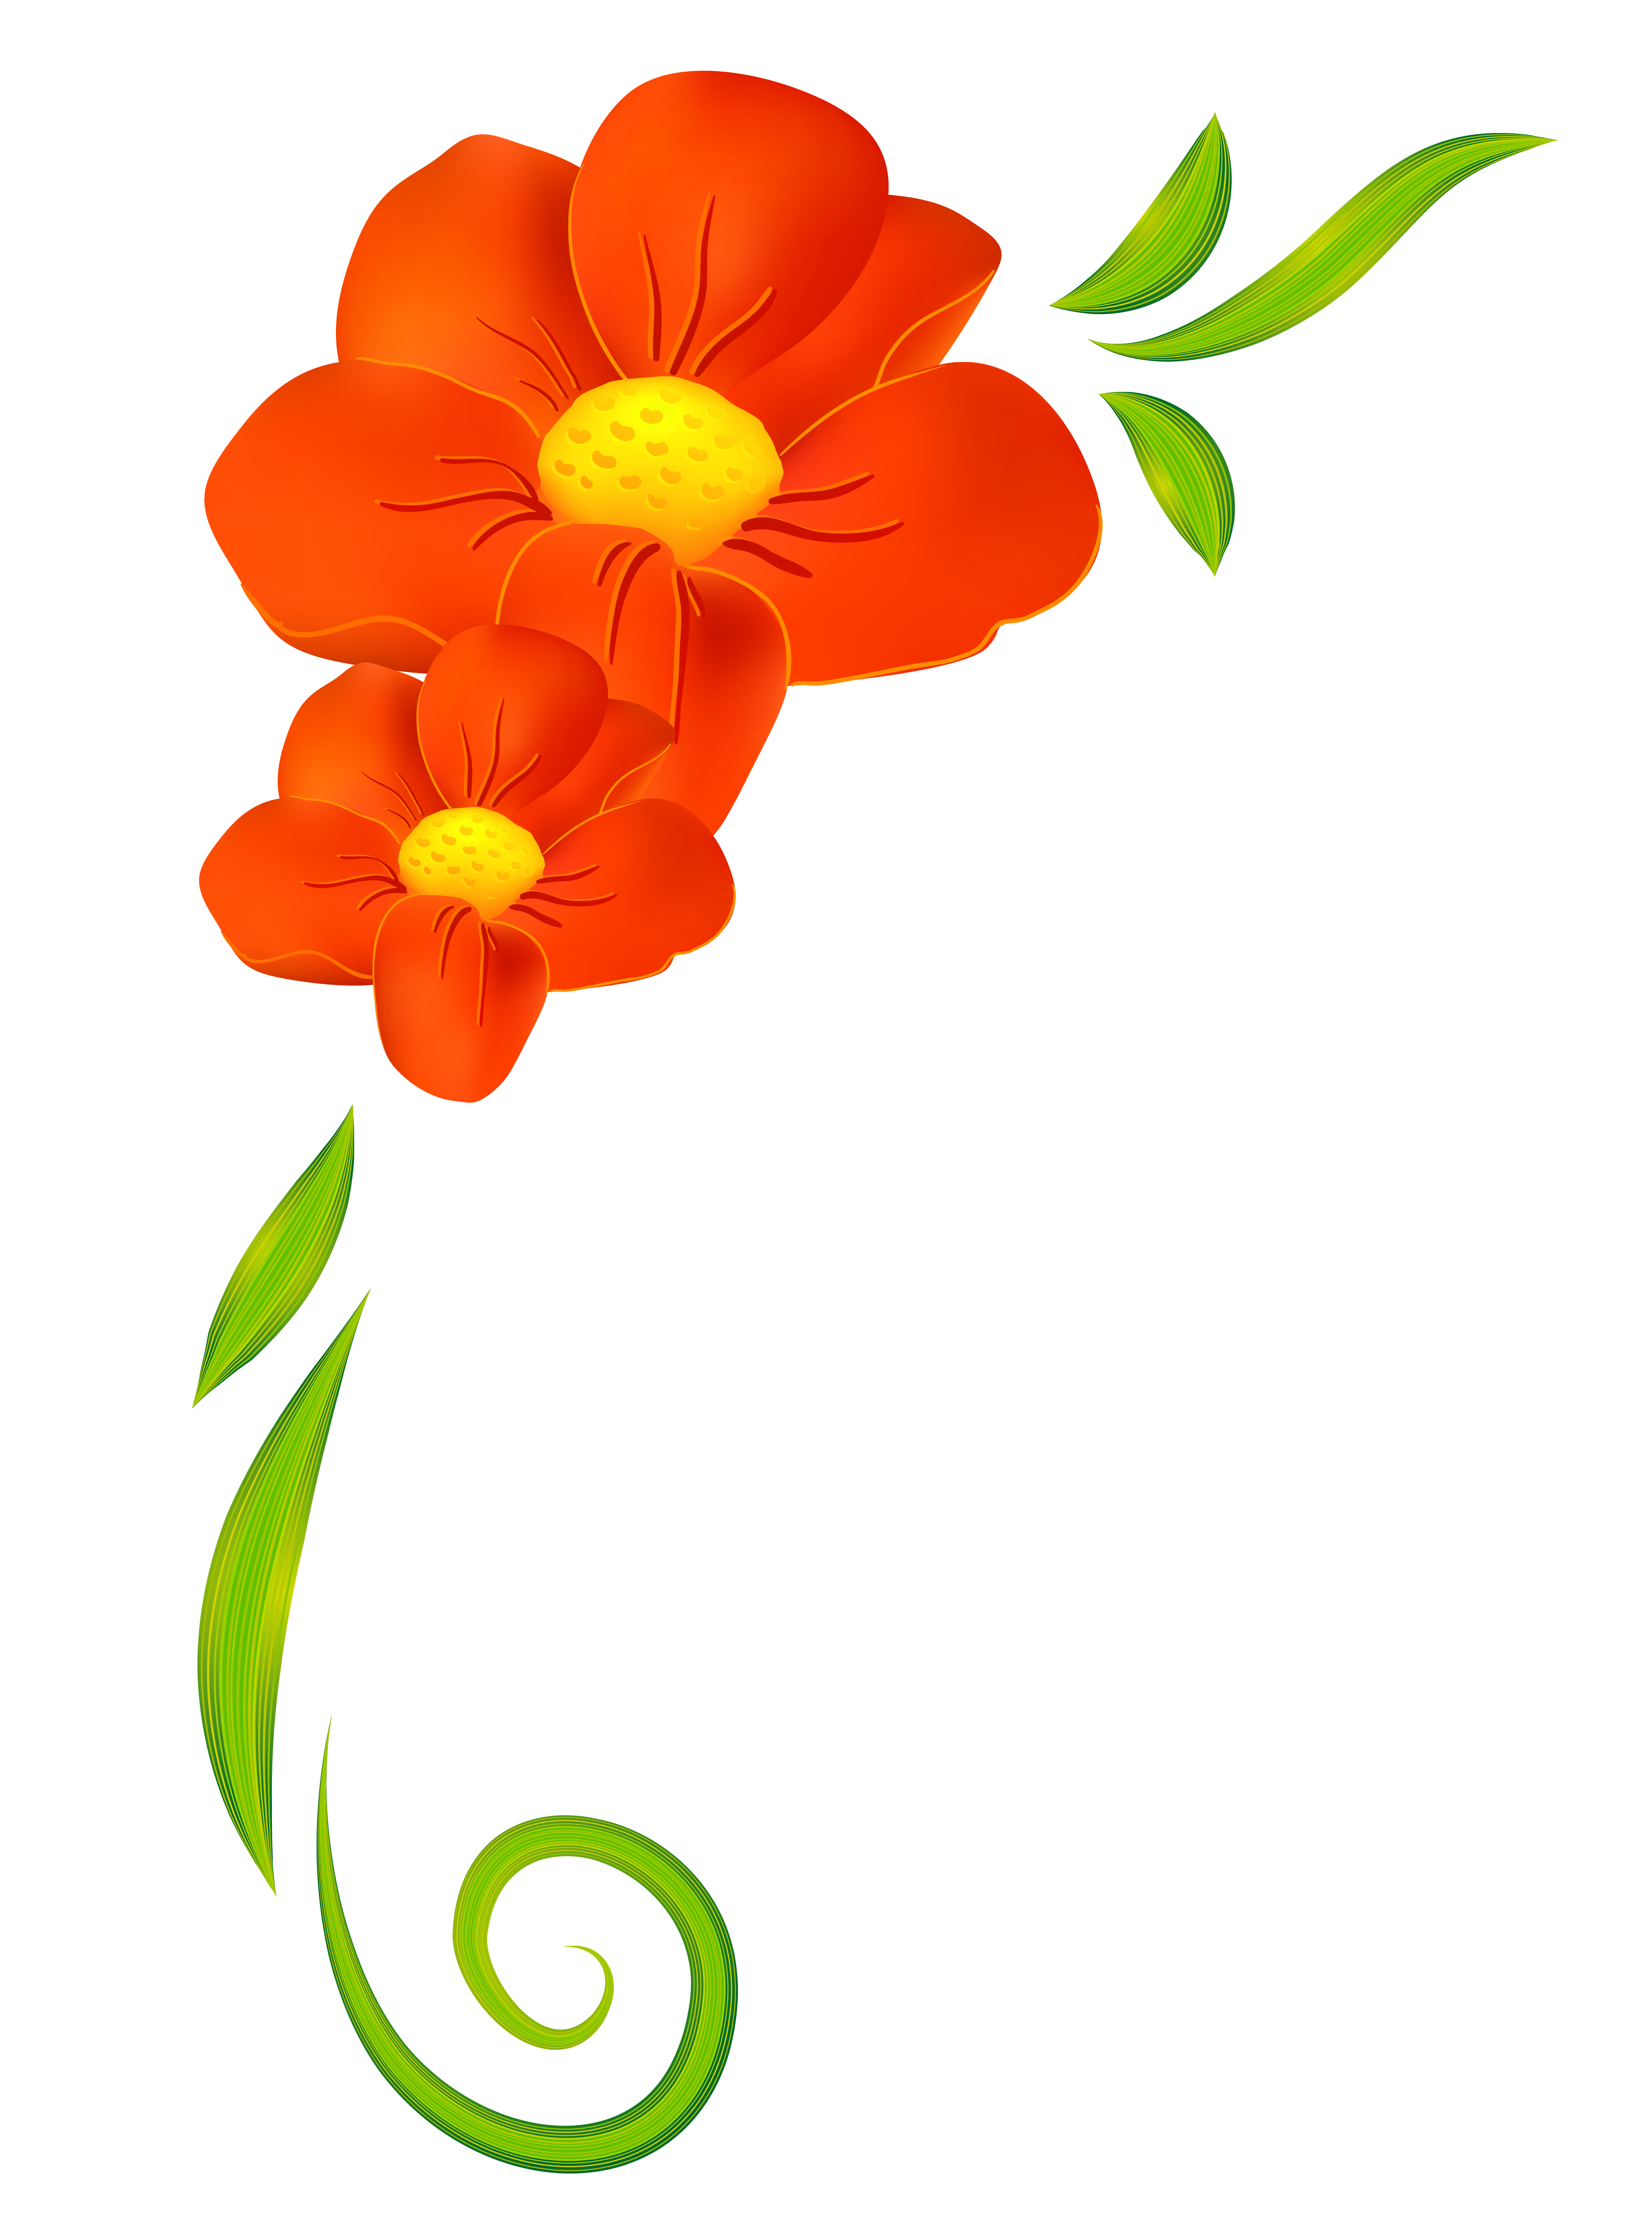 Flower clipart orange clip art free Image result for clipart spring flowers | FLOWERS | Pinterest | Hd ... clip art free